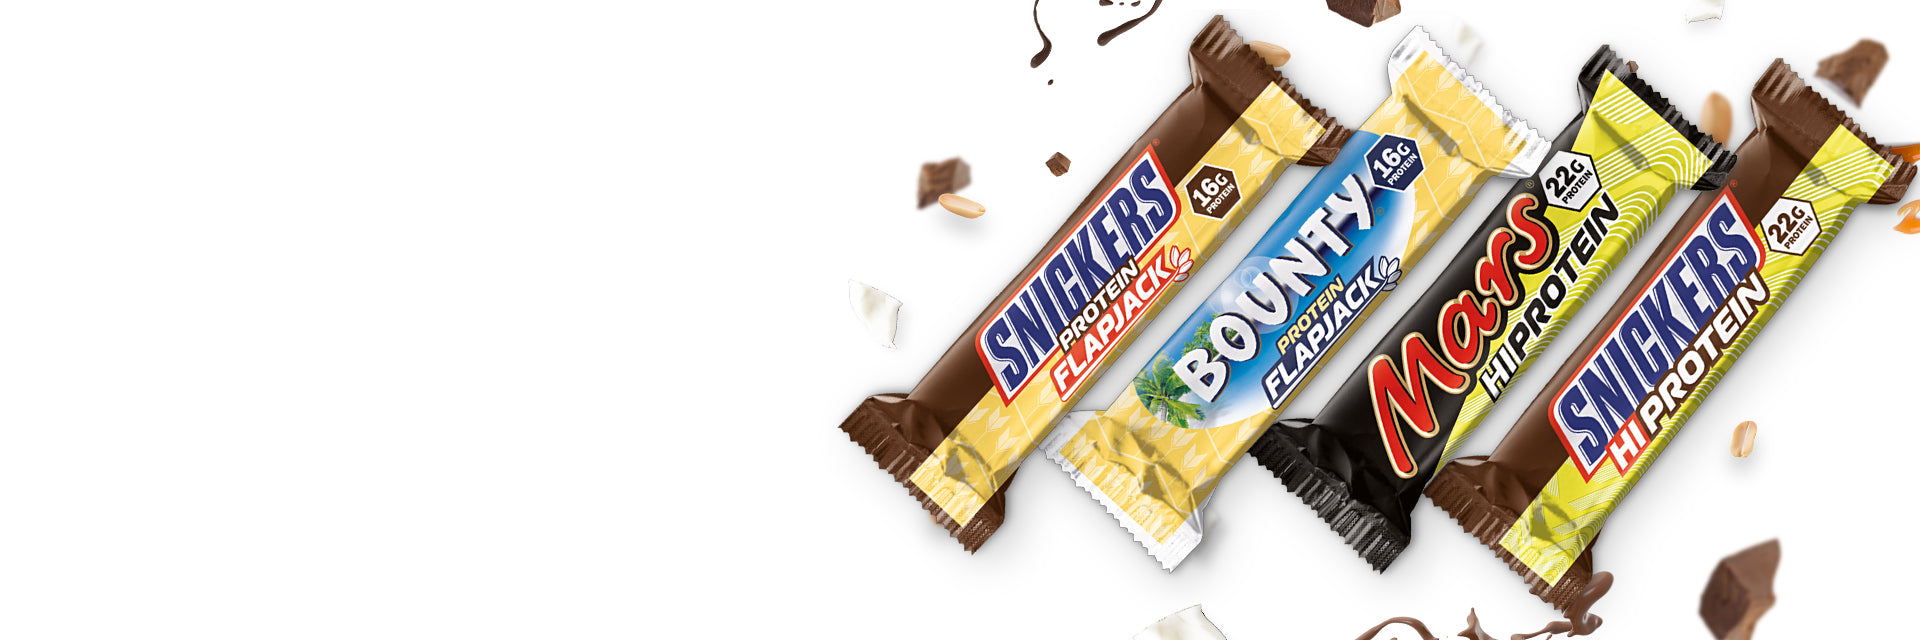 Snickers Hi Protein Bar, Bounty Protein Flapjack, Mars Hi Protein Bar, Snickers Protein Flapjack - Box of Protein